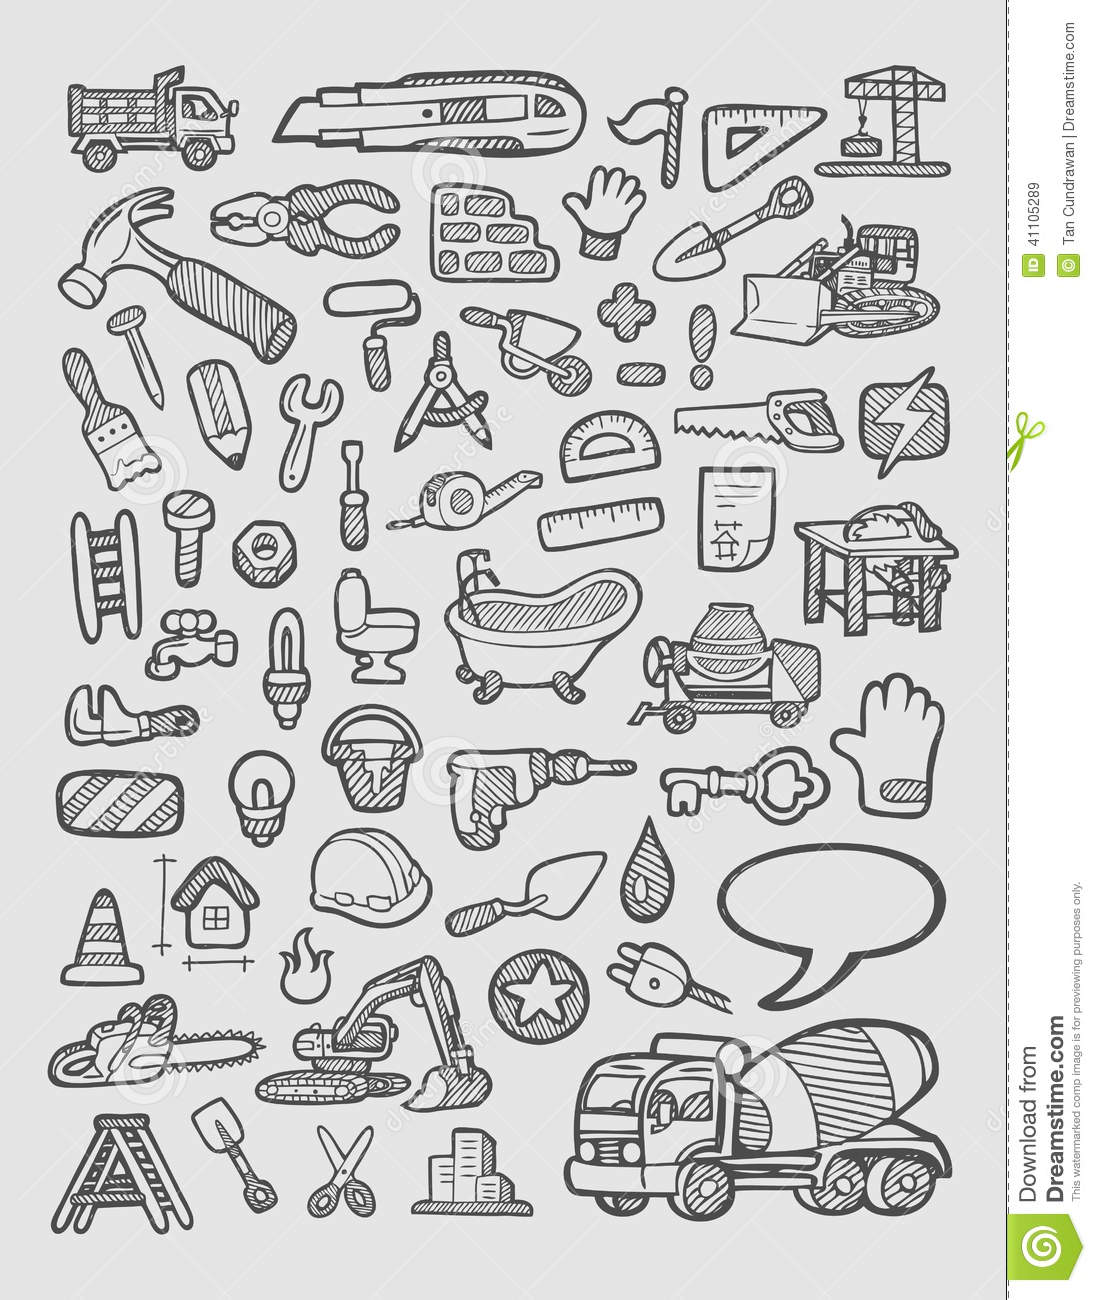 Construction Icons Sketch Stock Vector Image 41105289